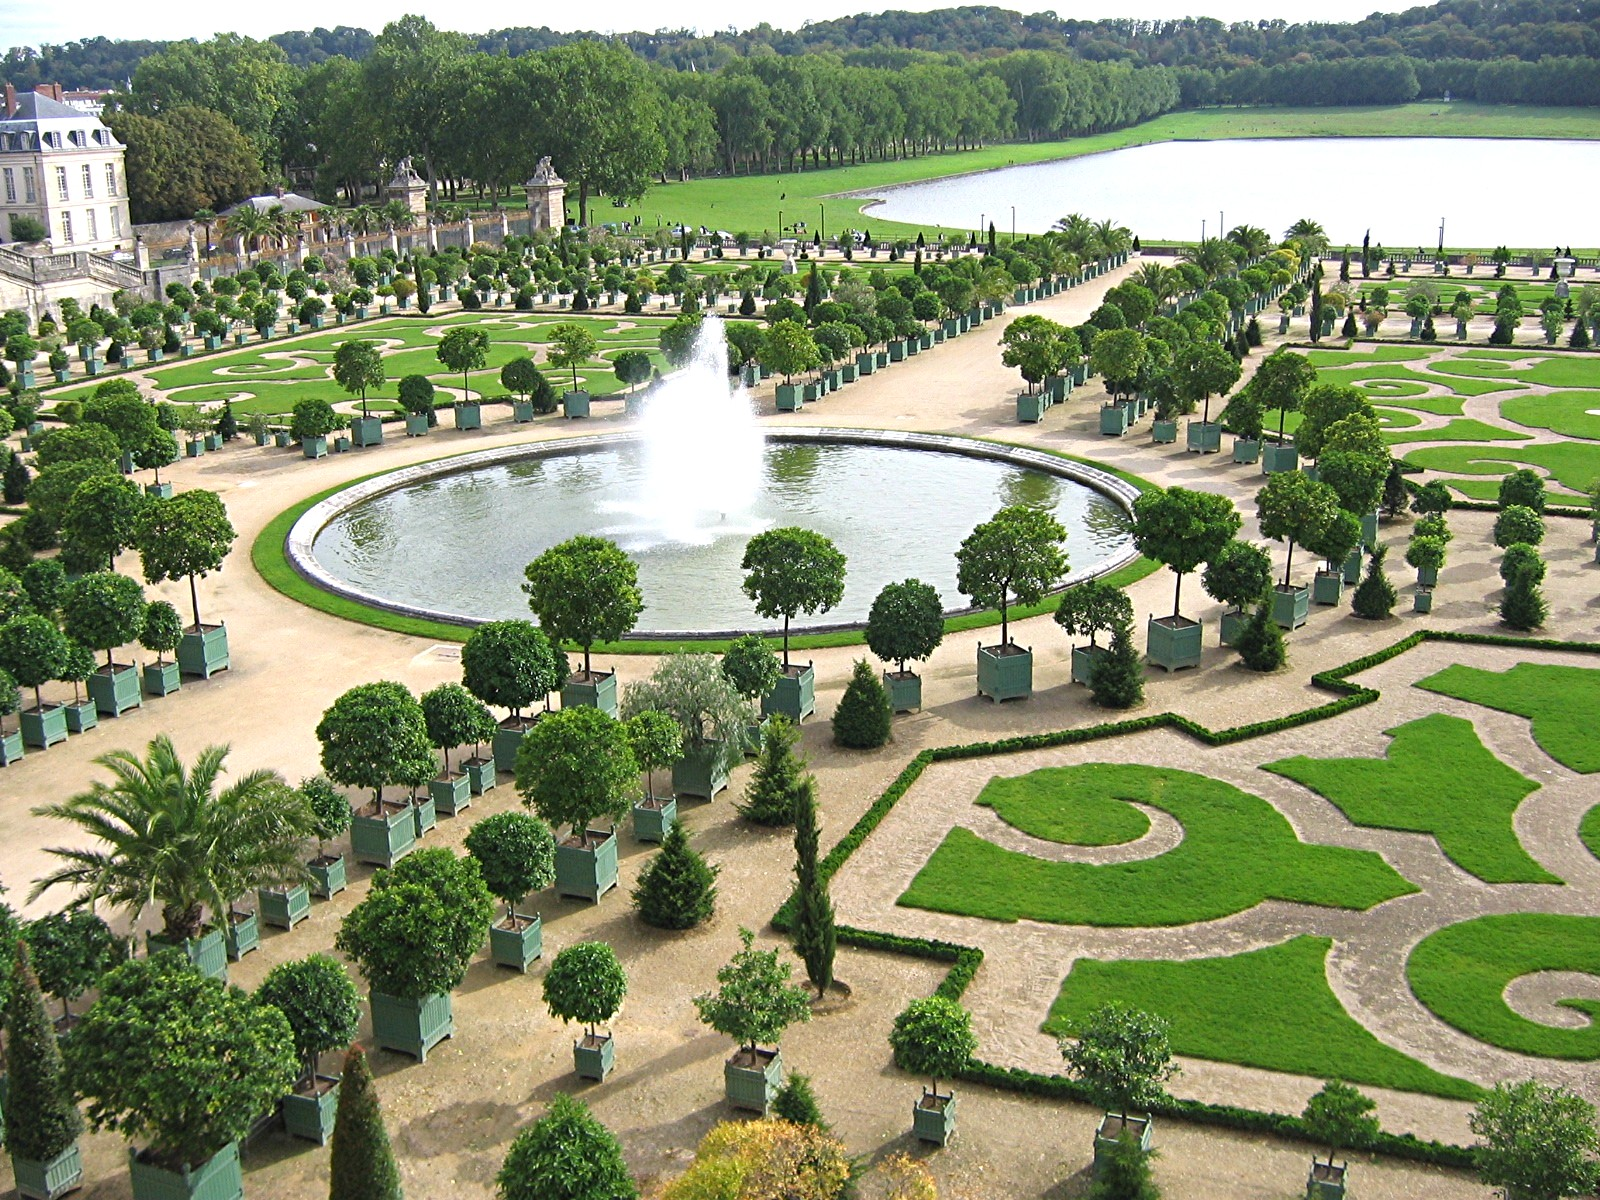 The garden at Versailles is an example of stunning landscape architecture